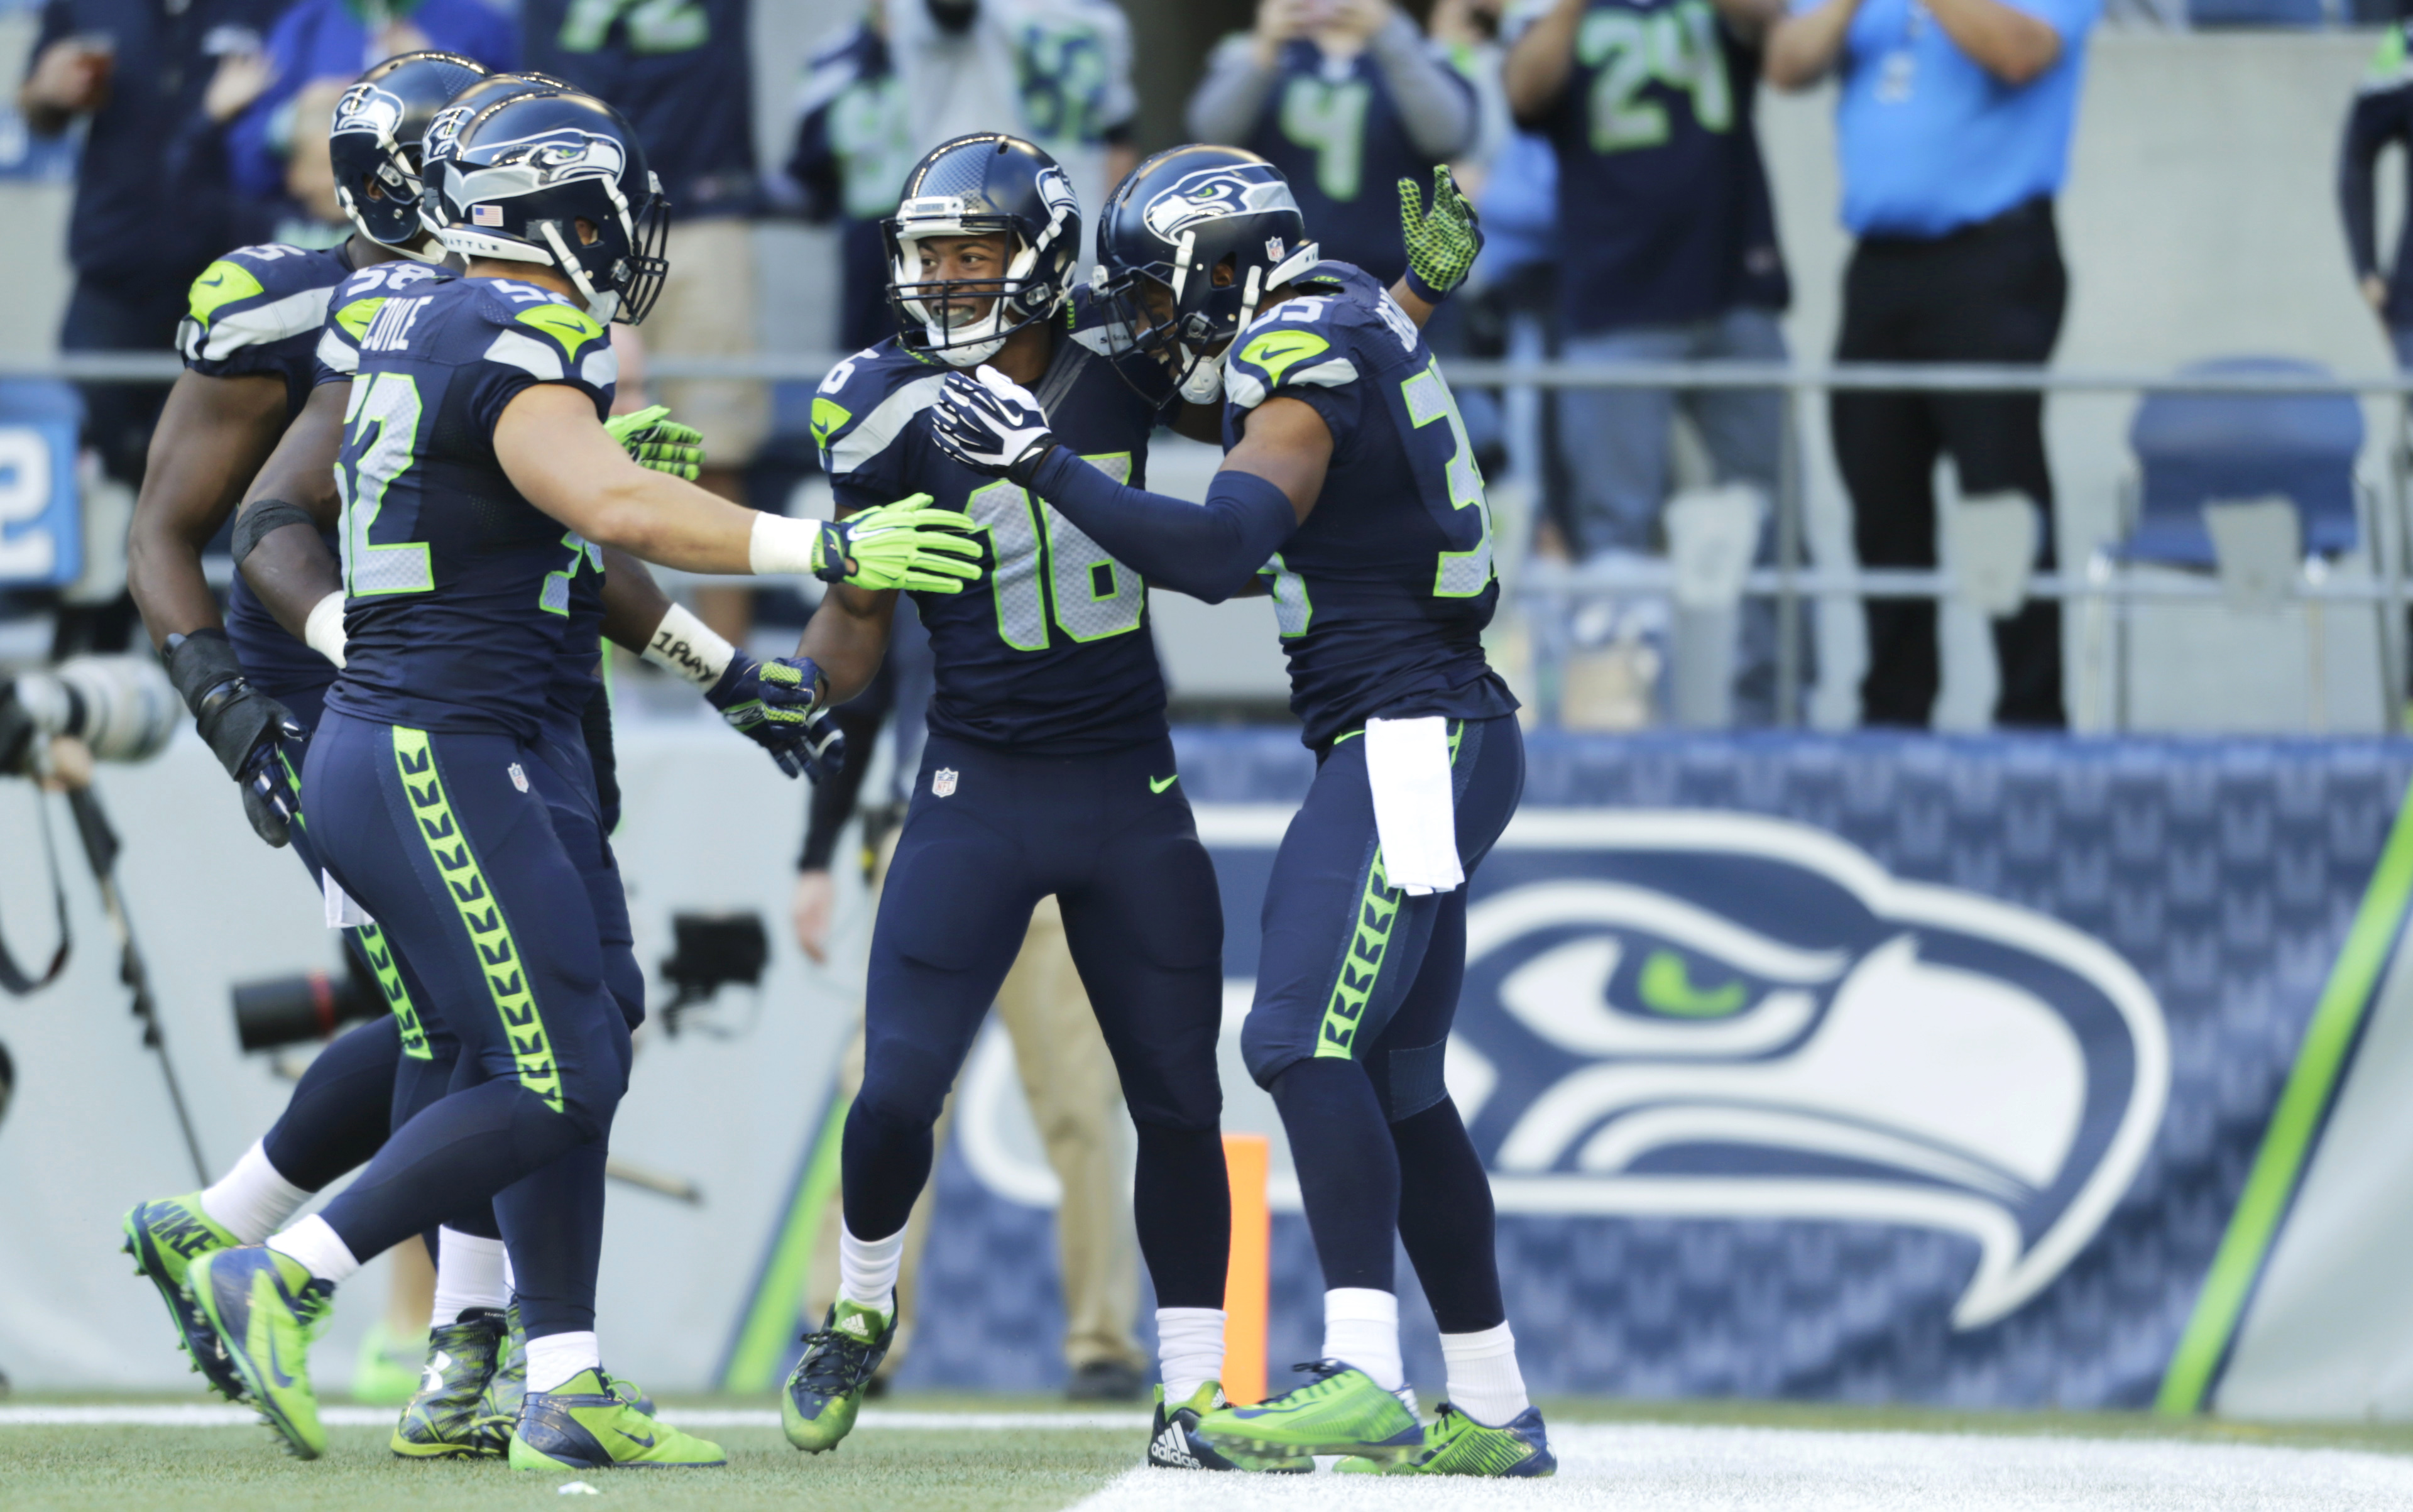 Seattle Seahawks wide receiver Tyler Lockett, second from right, is greeted by teammates, including DeShawn Shead, right, after returning a Chicago Bears kickoff 105 yards for a touchdown in the second half of an NFL football game, Sunday, Sept. 27, 2015,